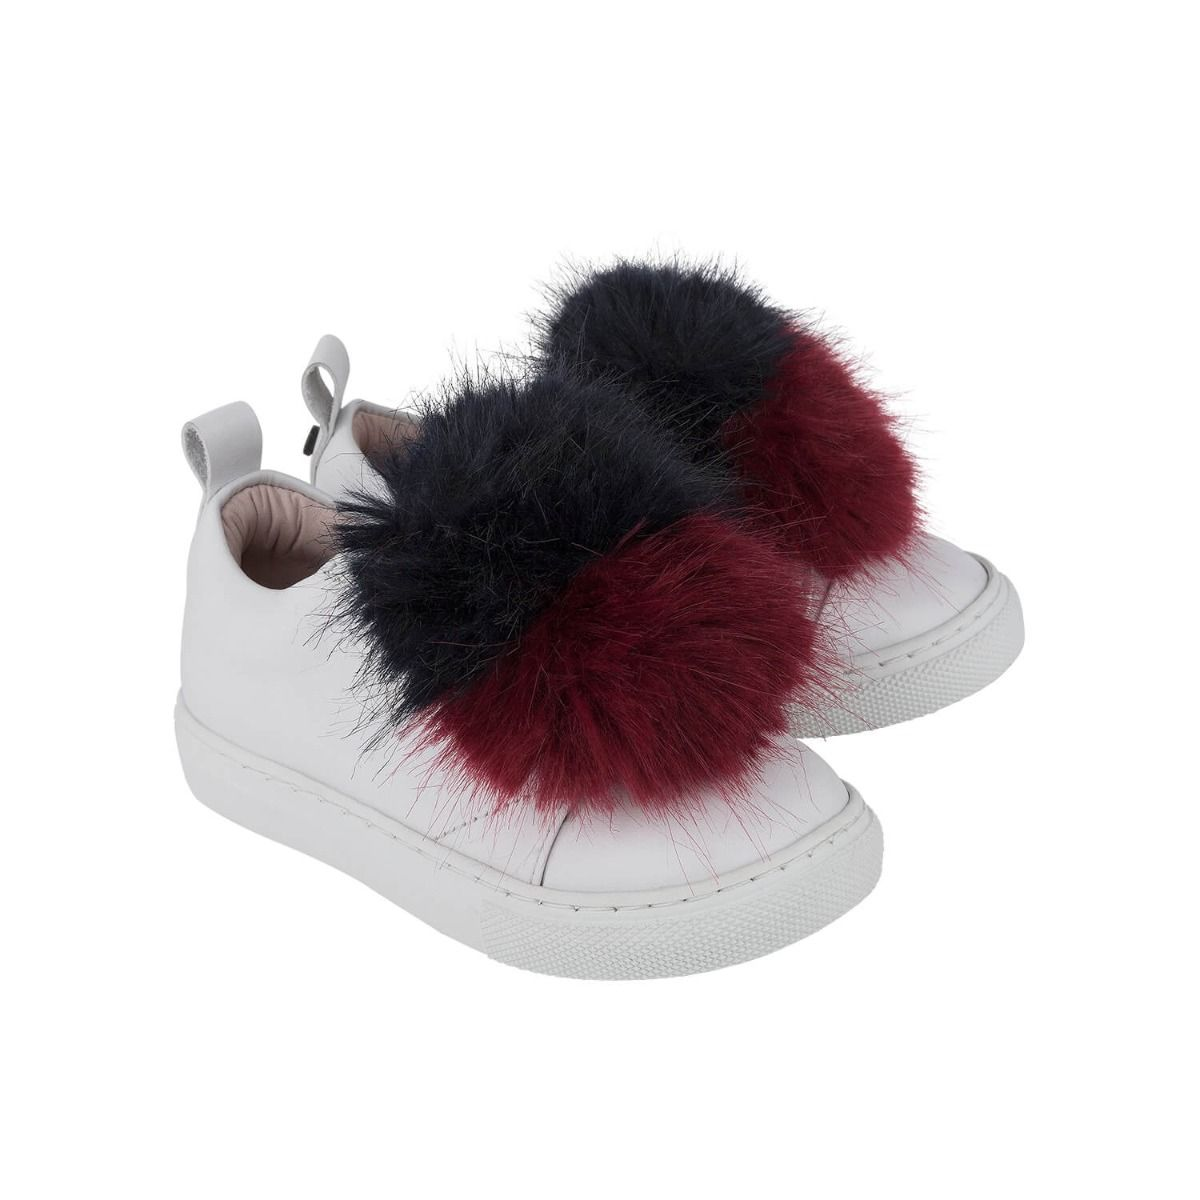 Baby and girl's sneakers in white leather with dark red and black faux fur applique